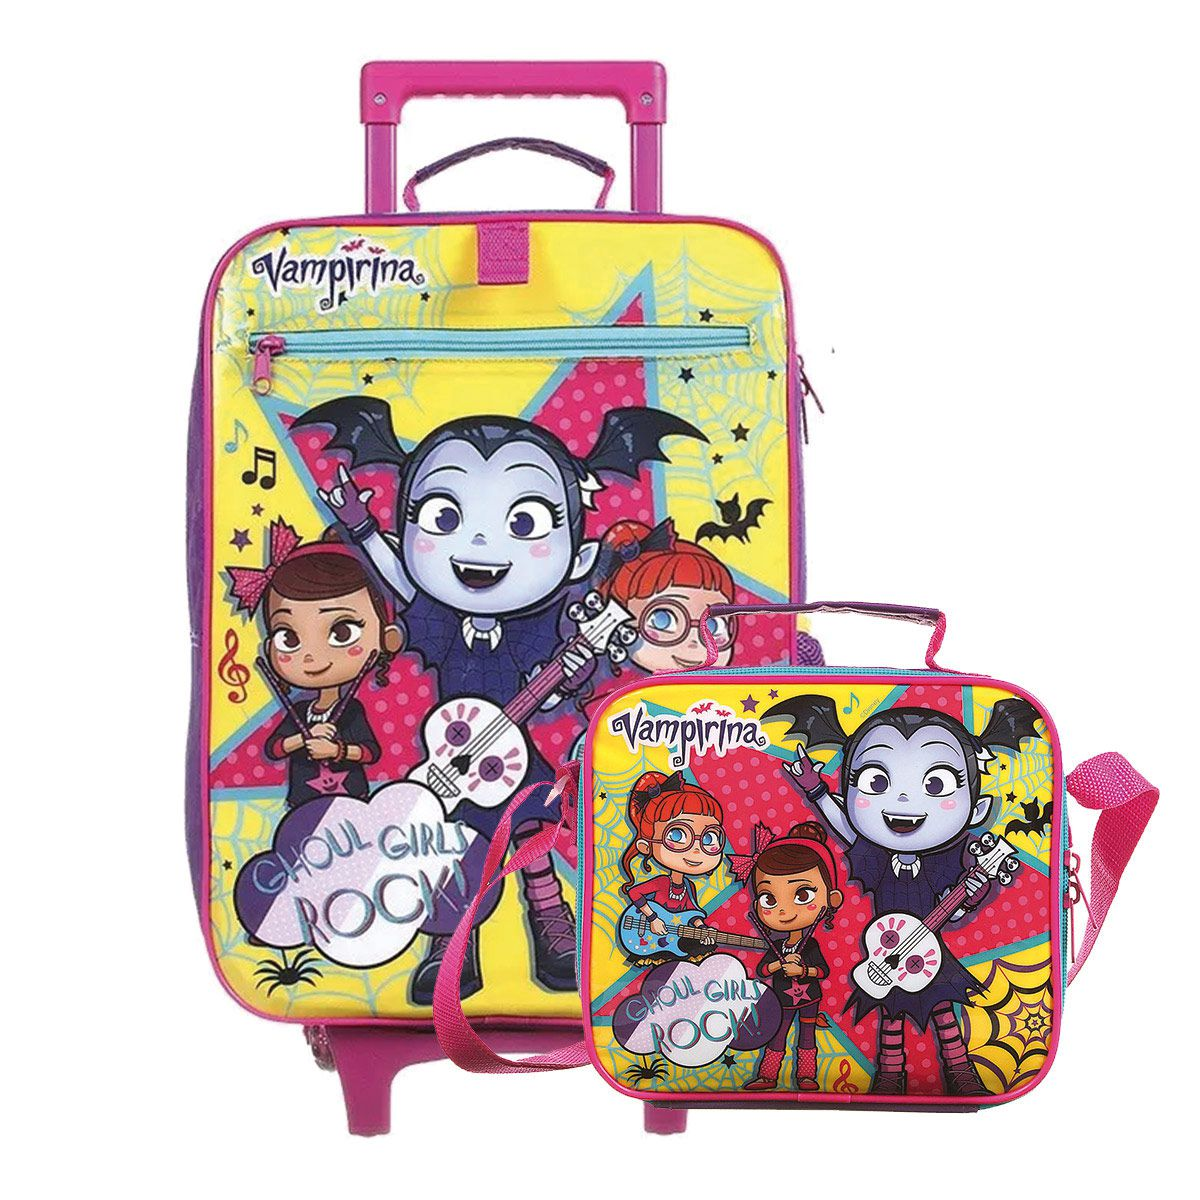 Kit Mochilete Escolar Vampirina Ghoul Girls Rock Disney + Lancheira